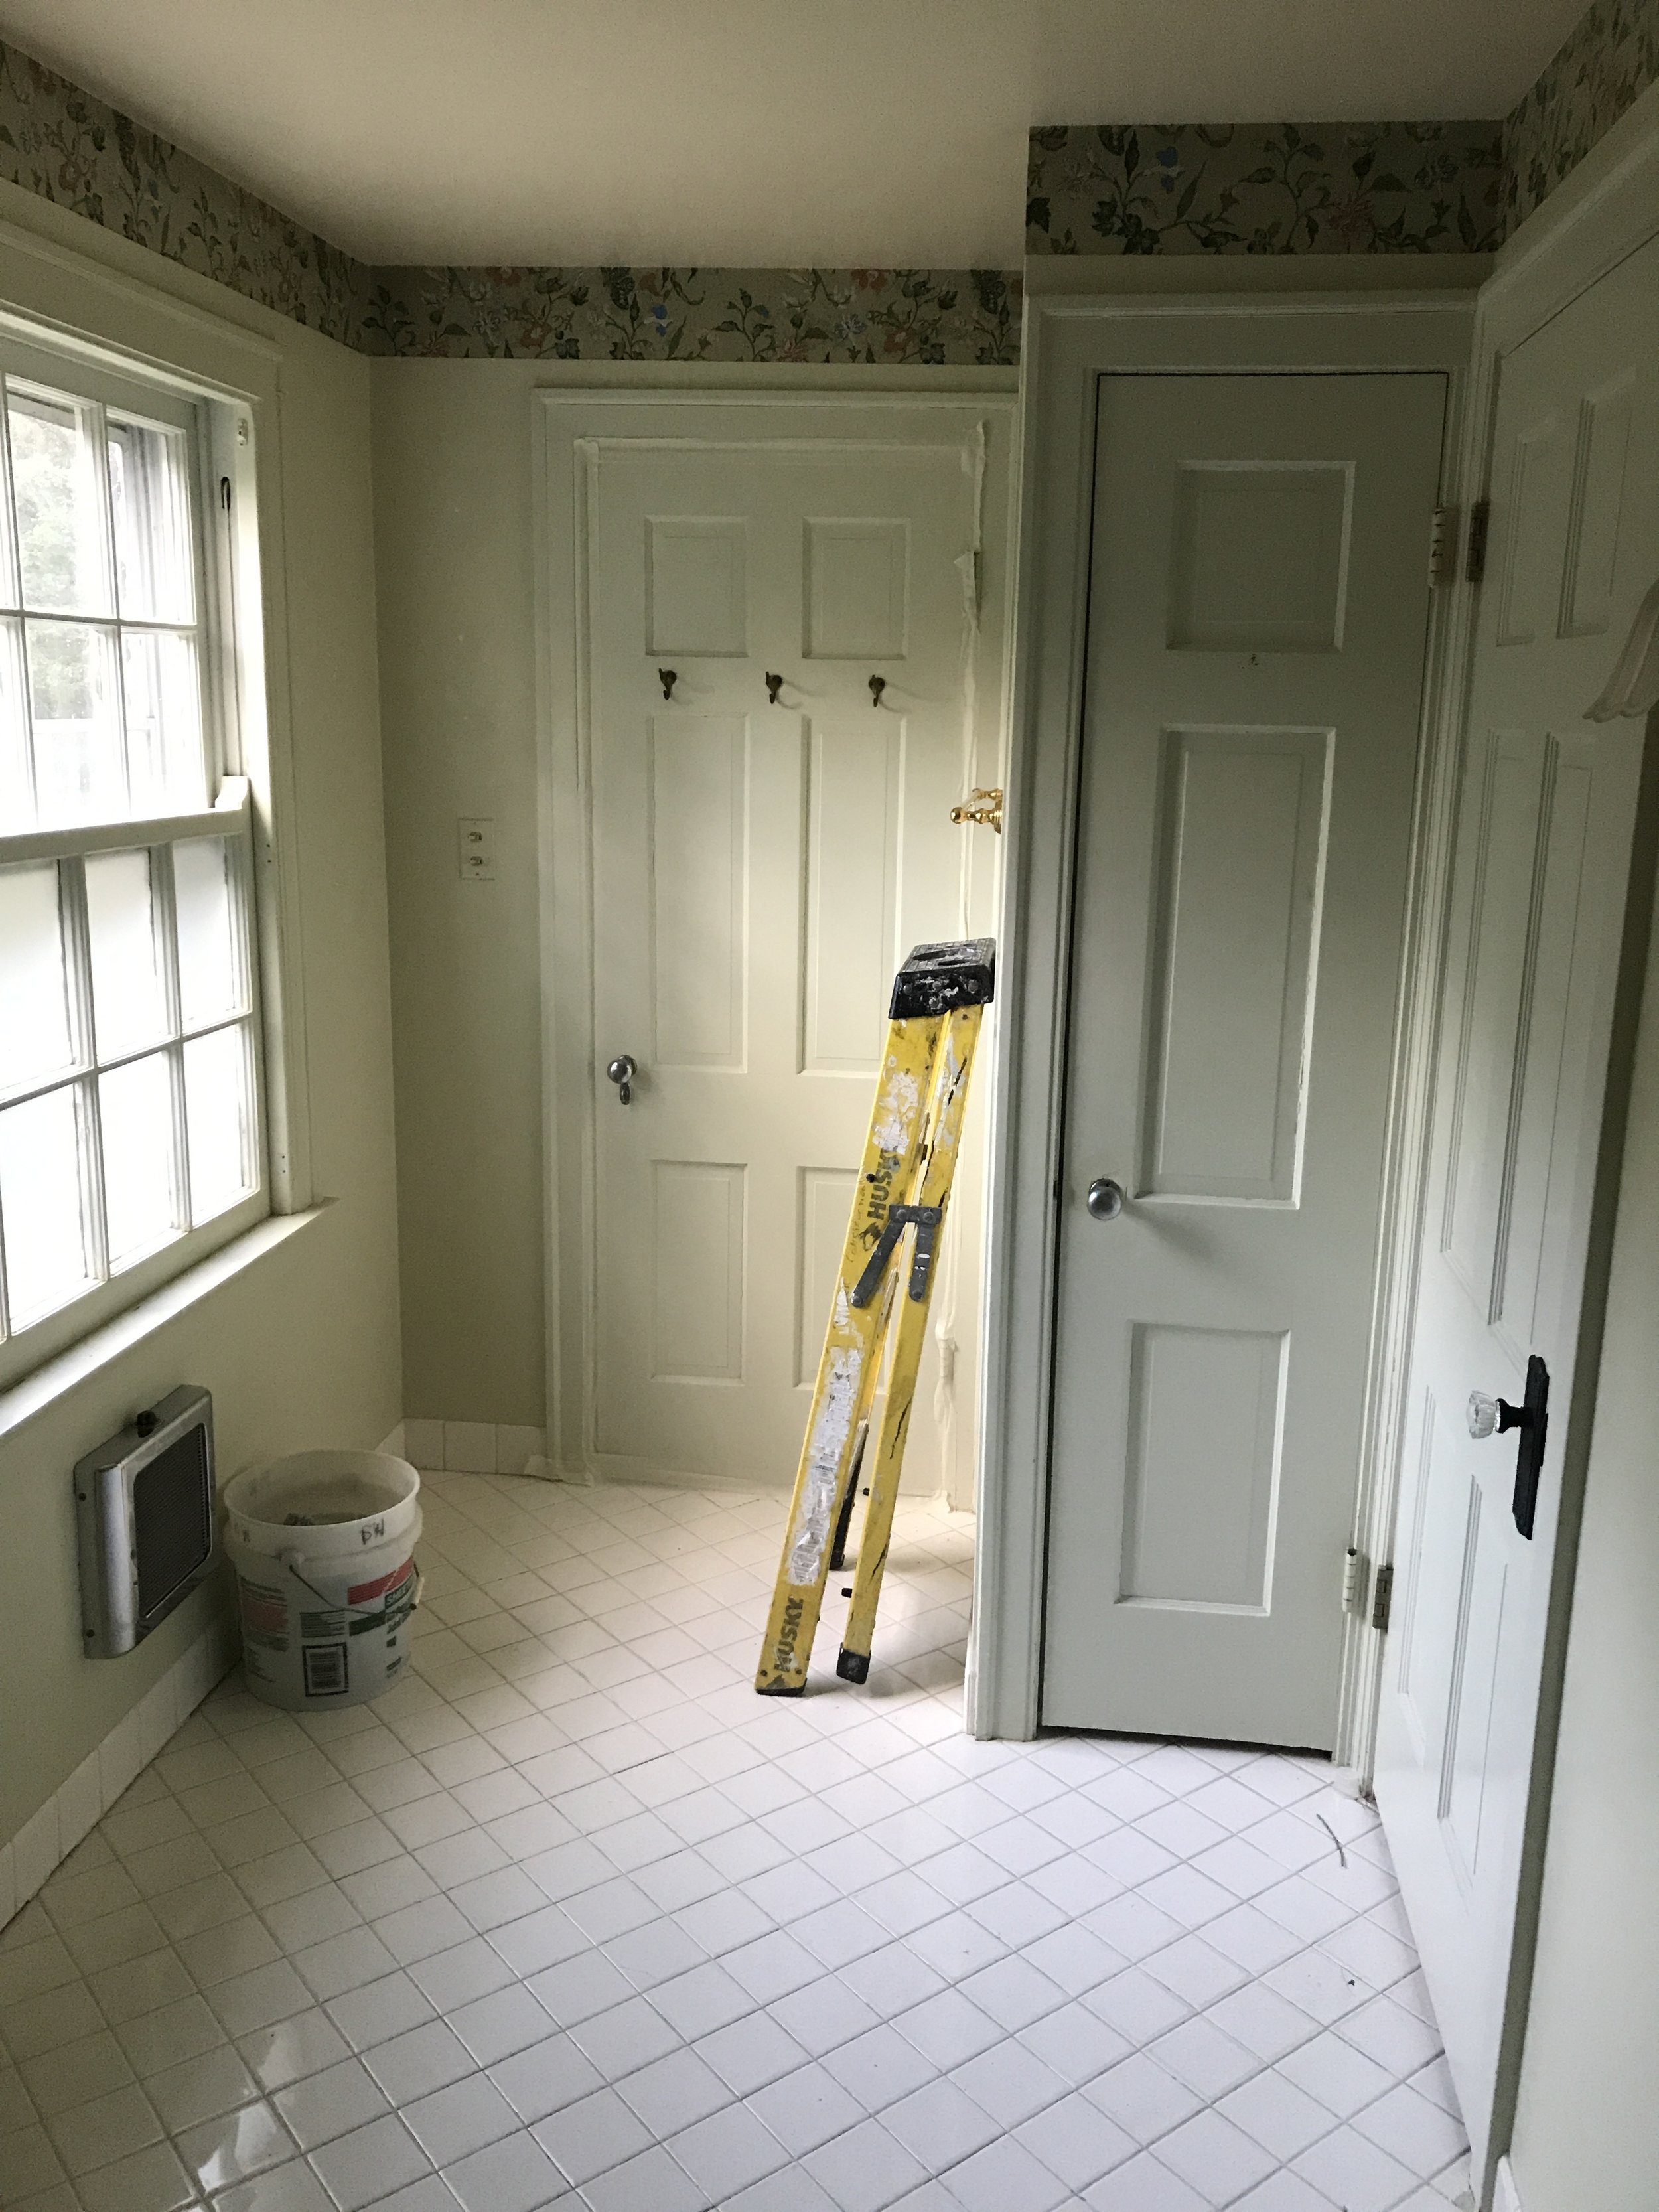 A view of the rest of the bathroom. A small closet sat between the hall door and master bedroom door. The original bathroom was nearly 14 feet long, but only 6 feet wide.